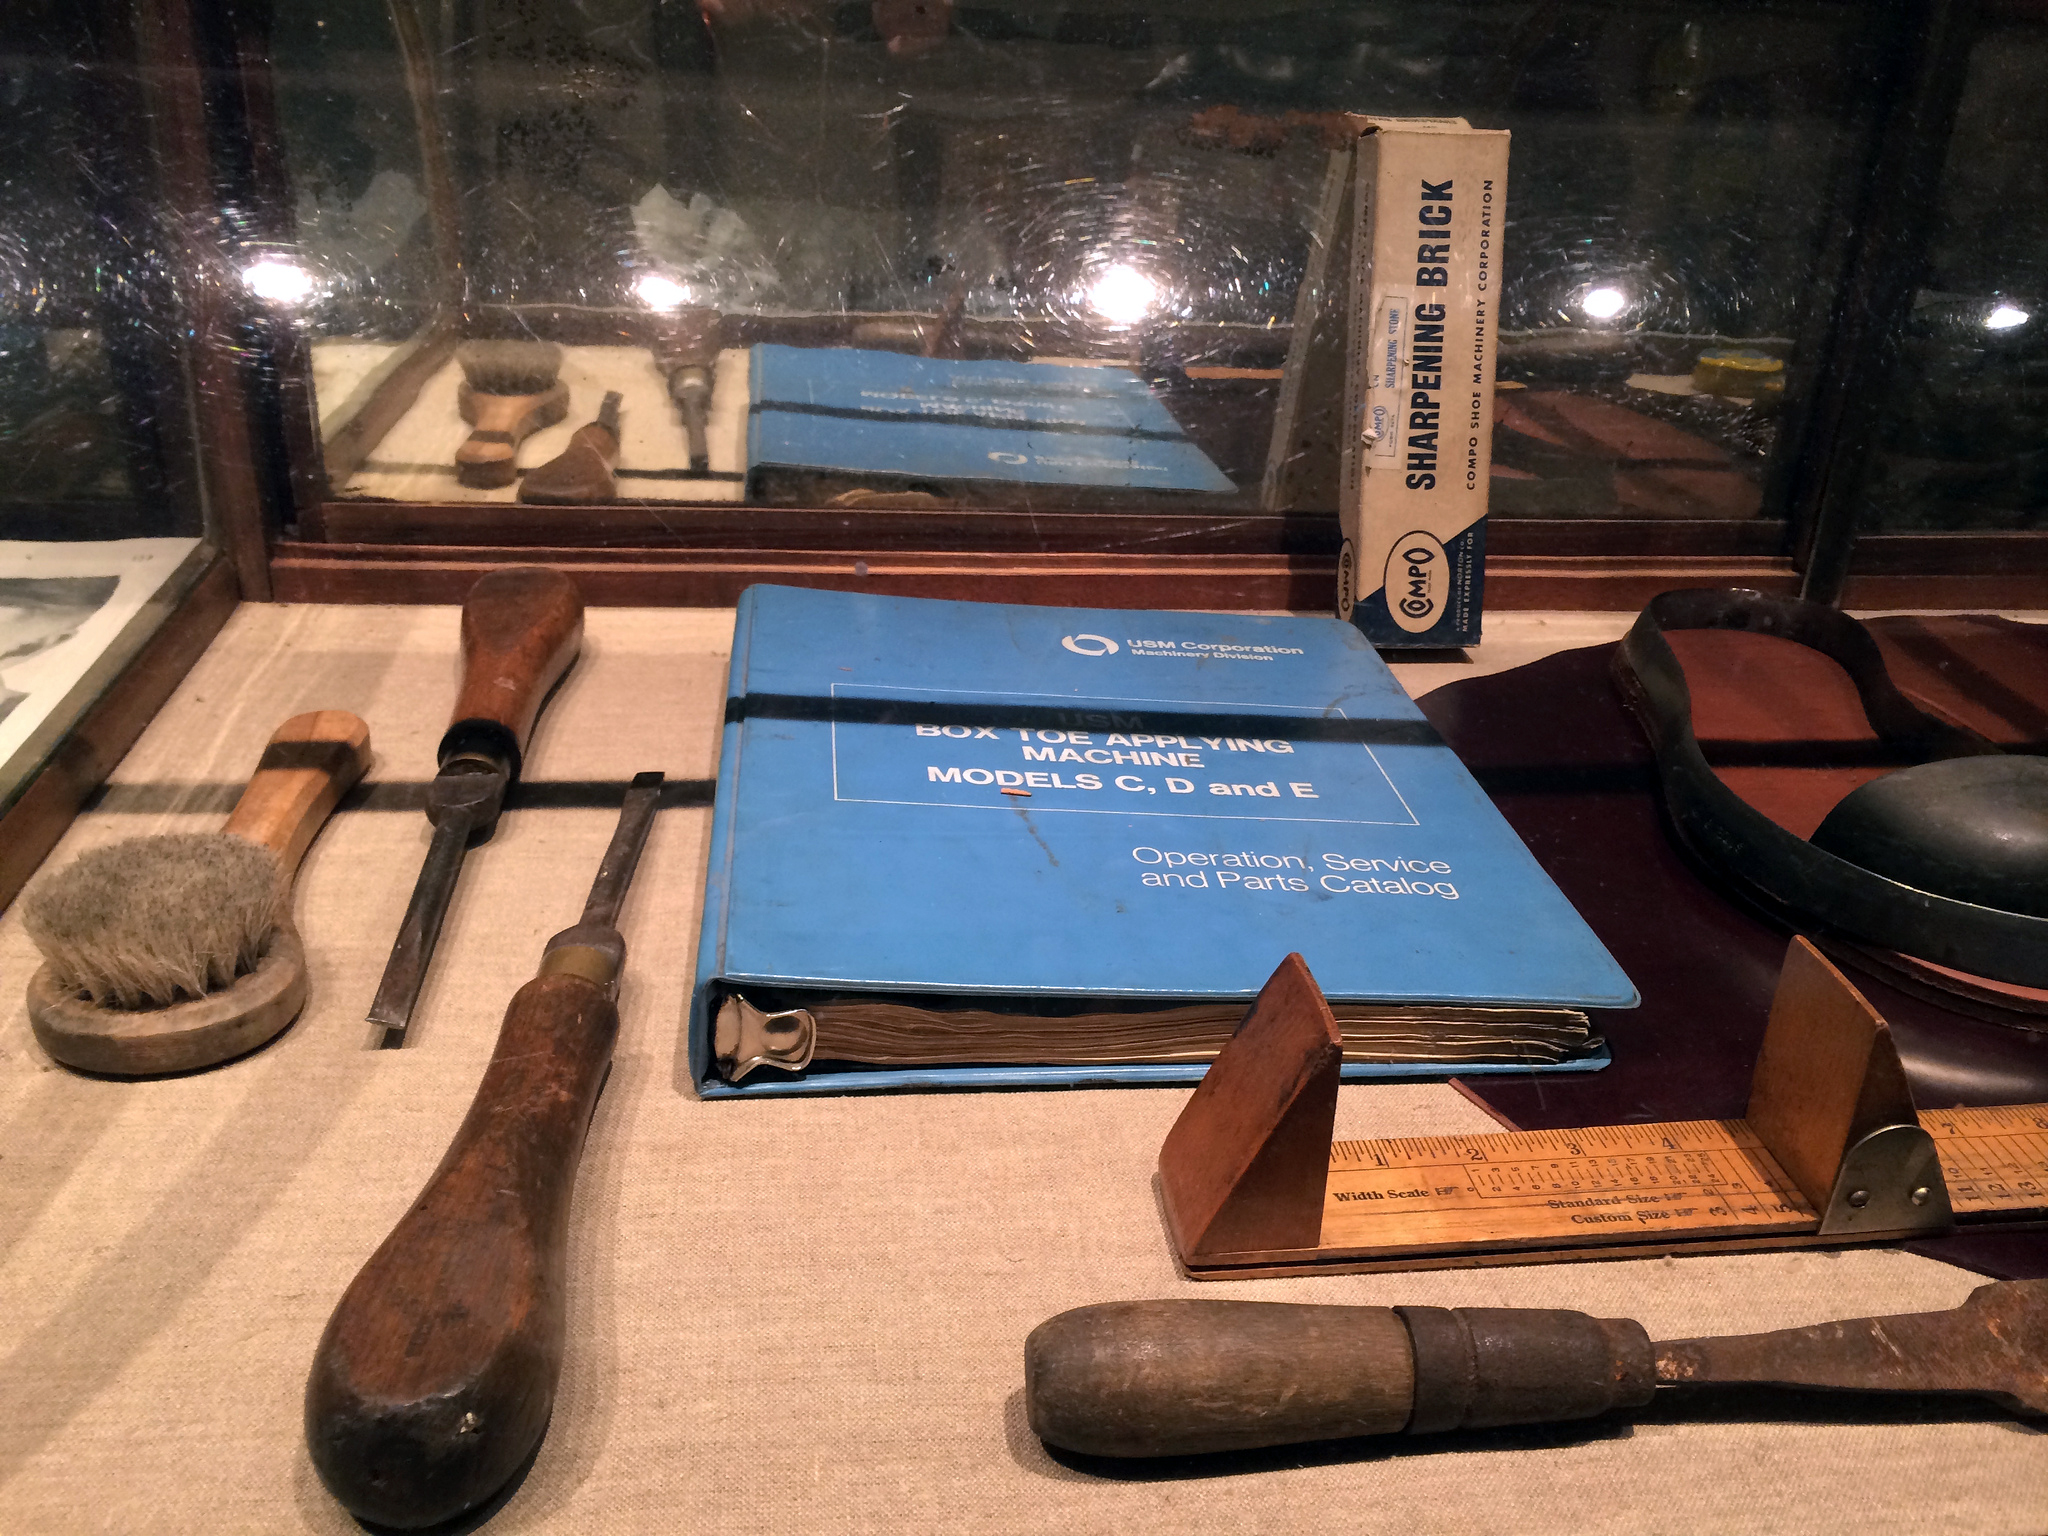 Vintage tools at Wolverine in New York. Photo by alphacityguides.